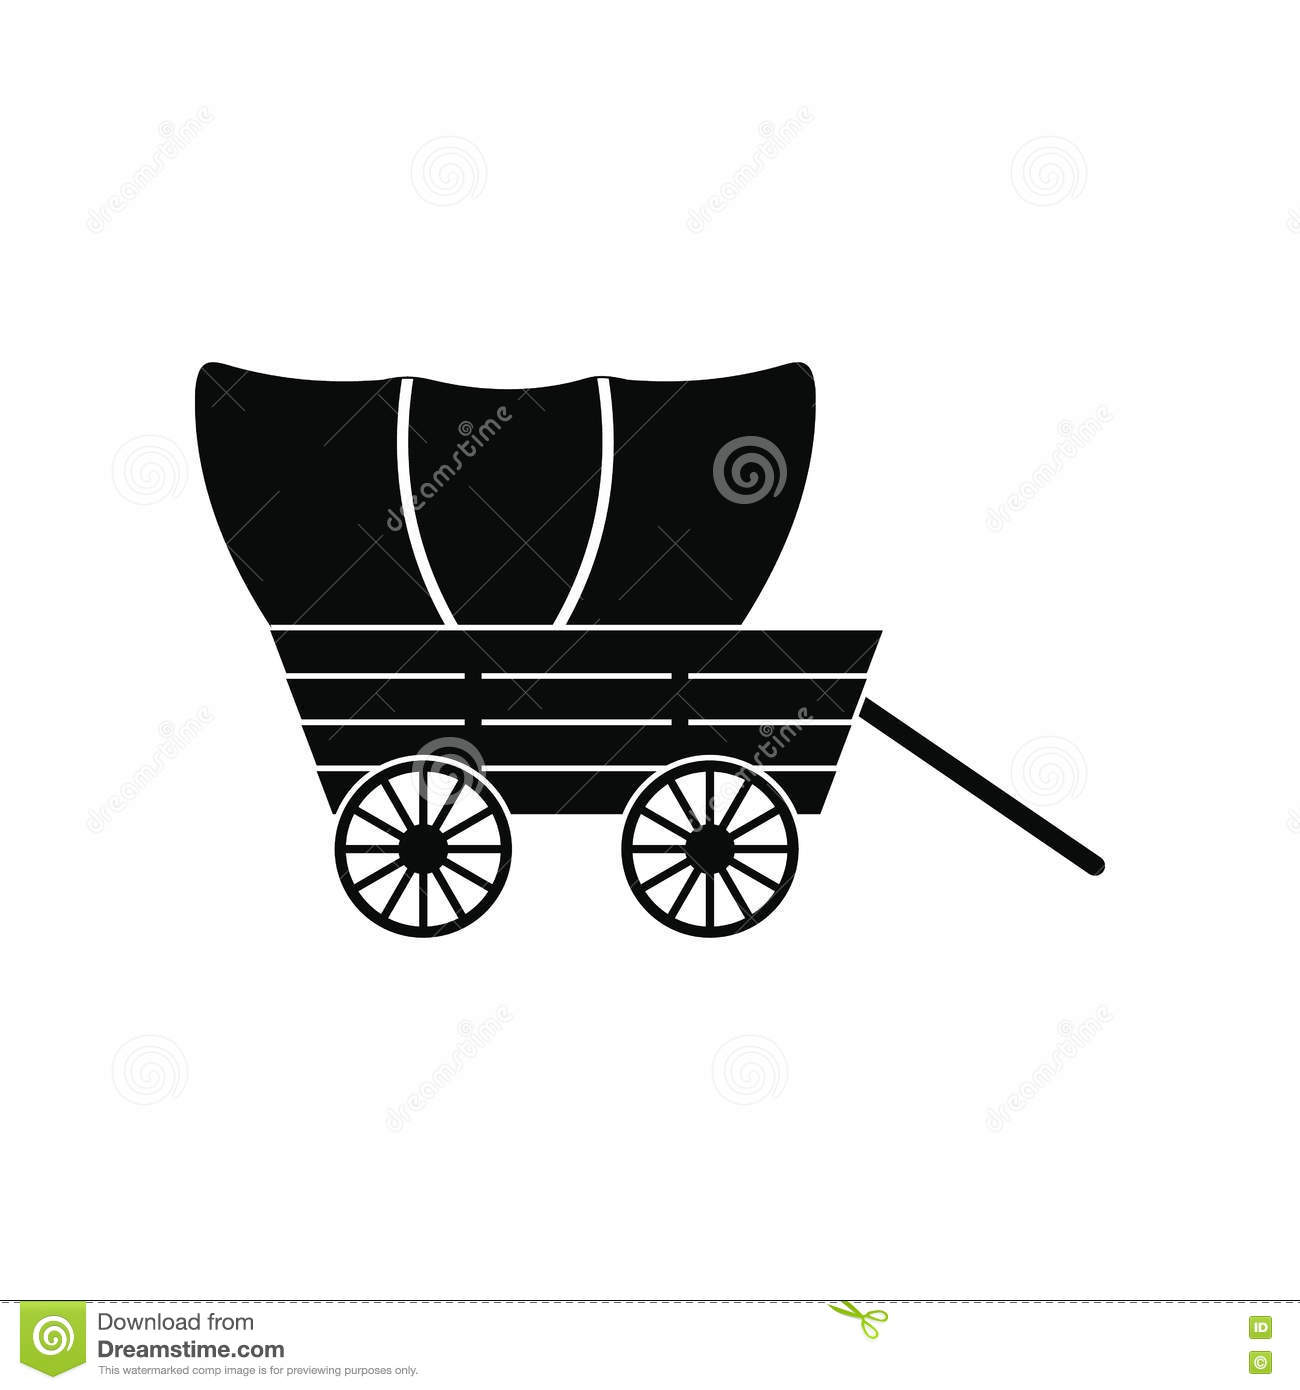 Wagon,covered,wild - Caravan Clipart Black And White - 500x516 PNG Download  - PNGkit